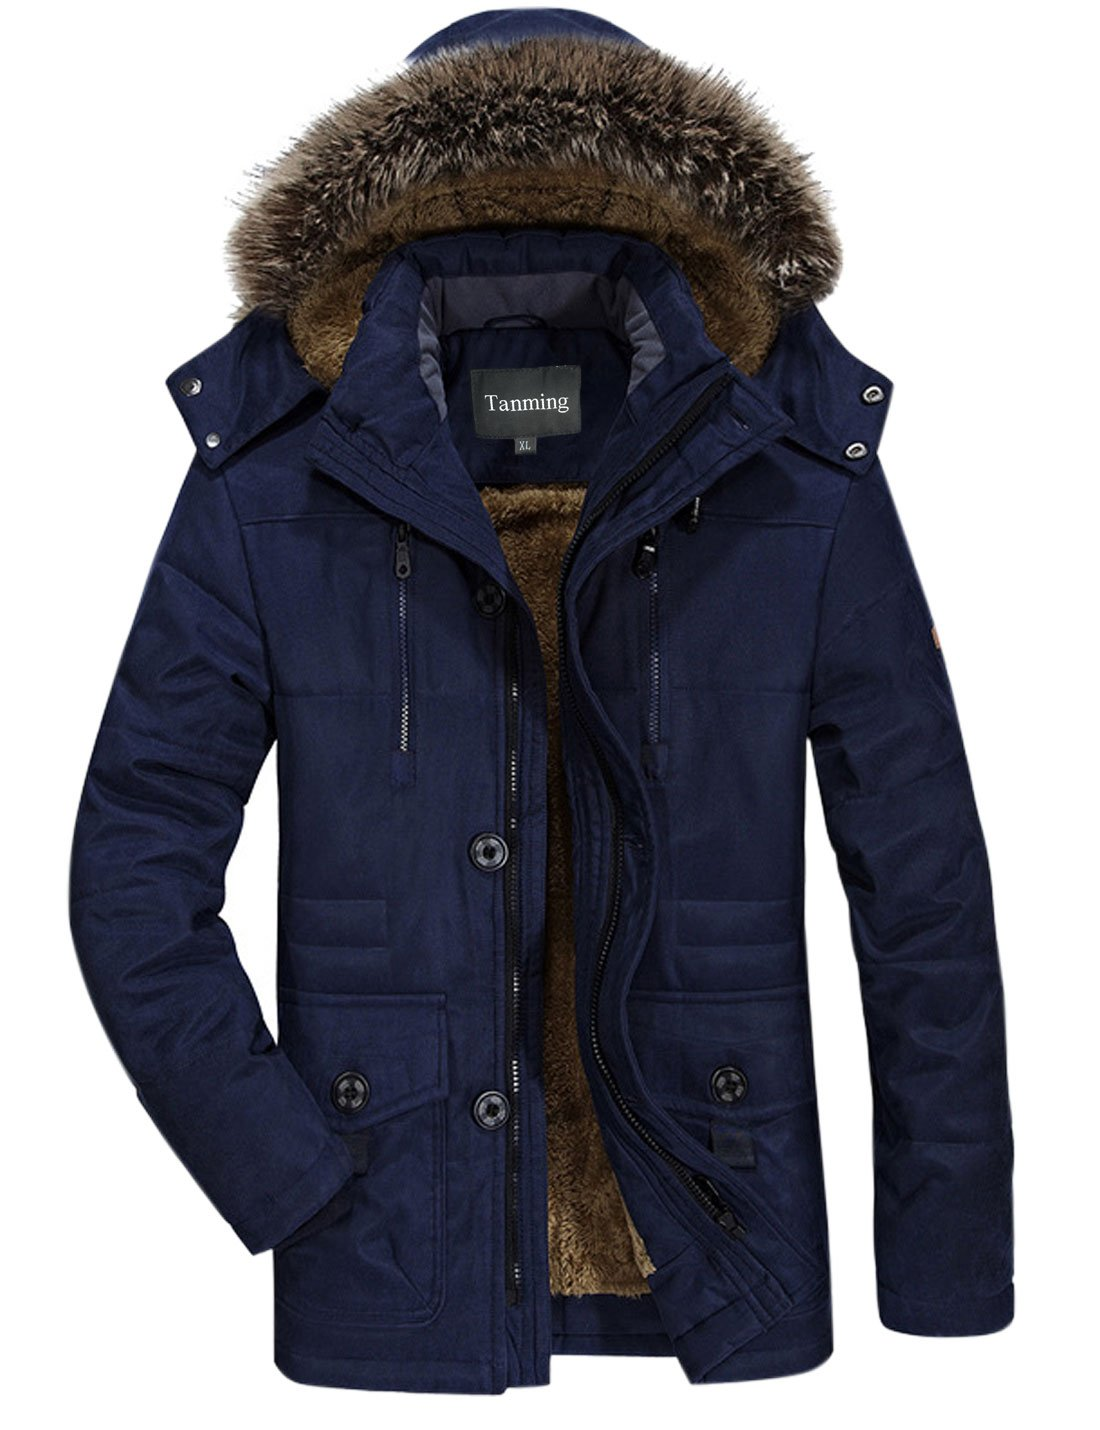 Tanming Men's Winter Warm Faux Fur Lined Coat with Detachable Hood (Small, Blue) by Tanming